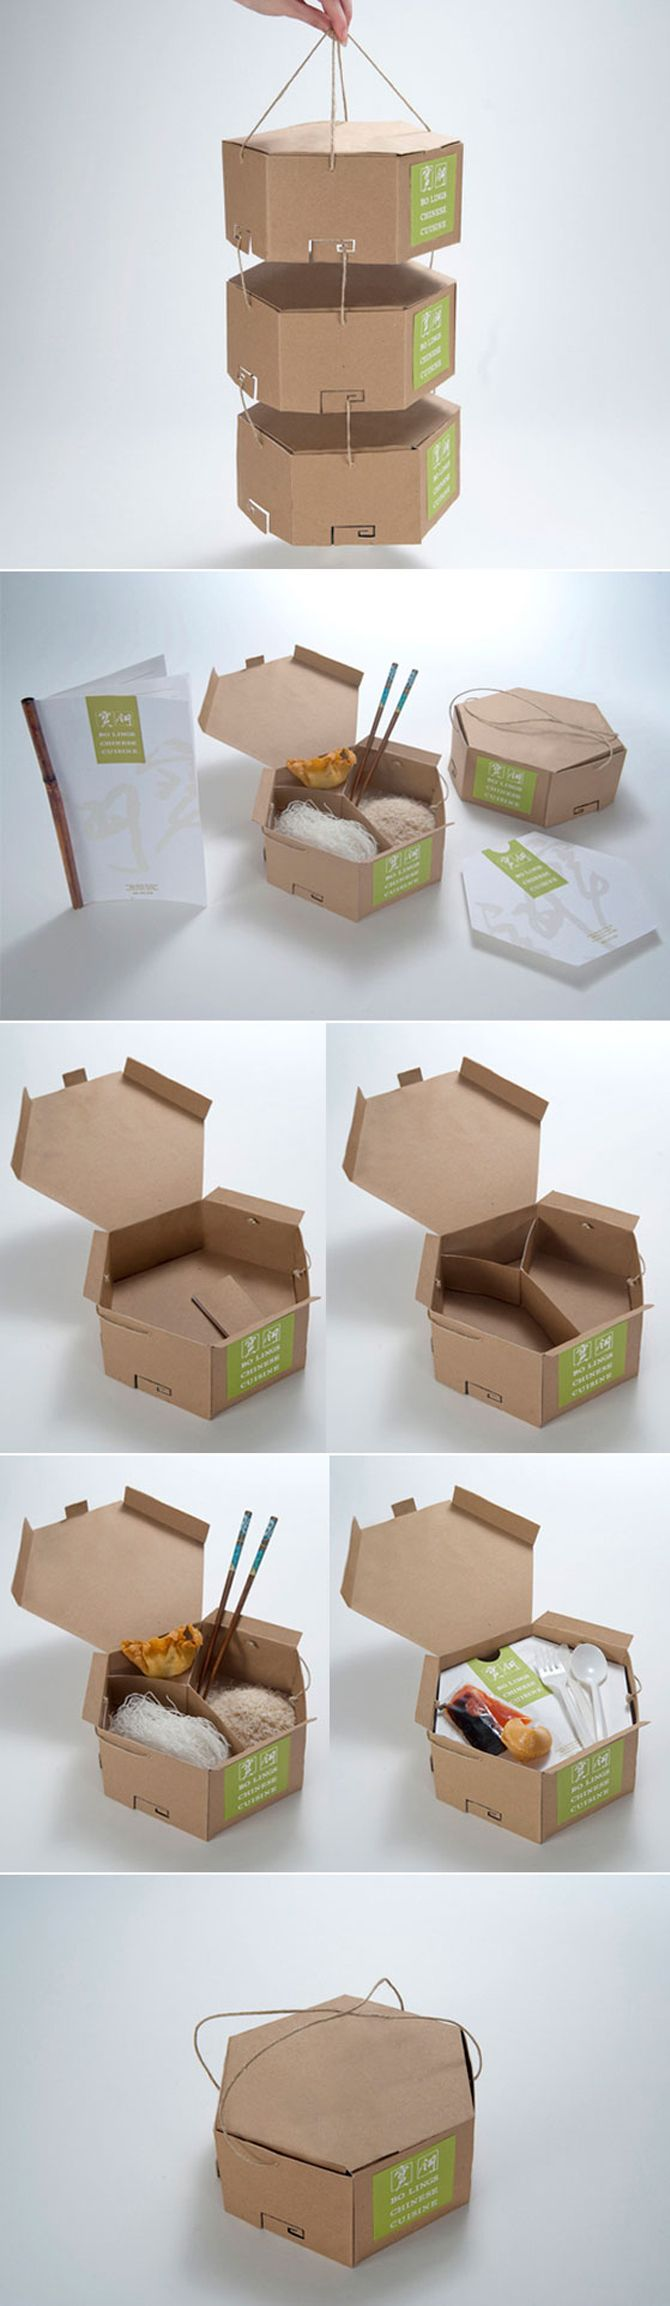 Amazing Packaging Designs For Inspiration |